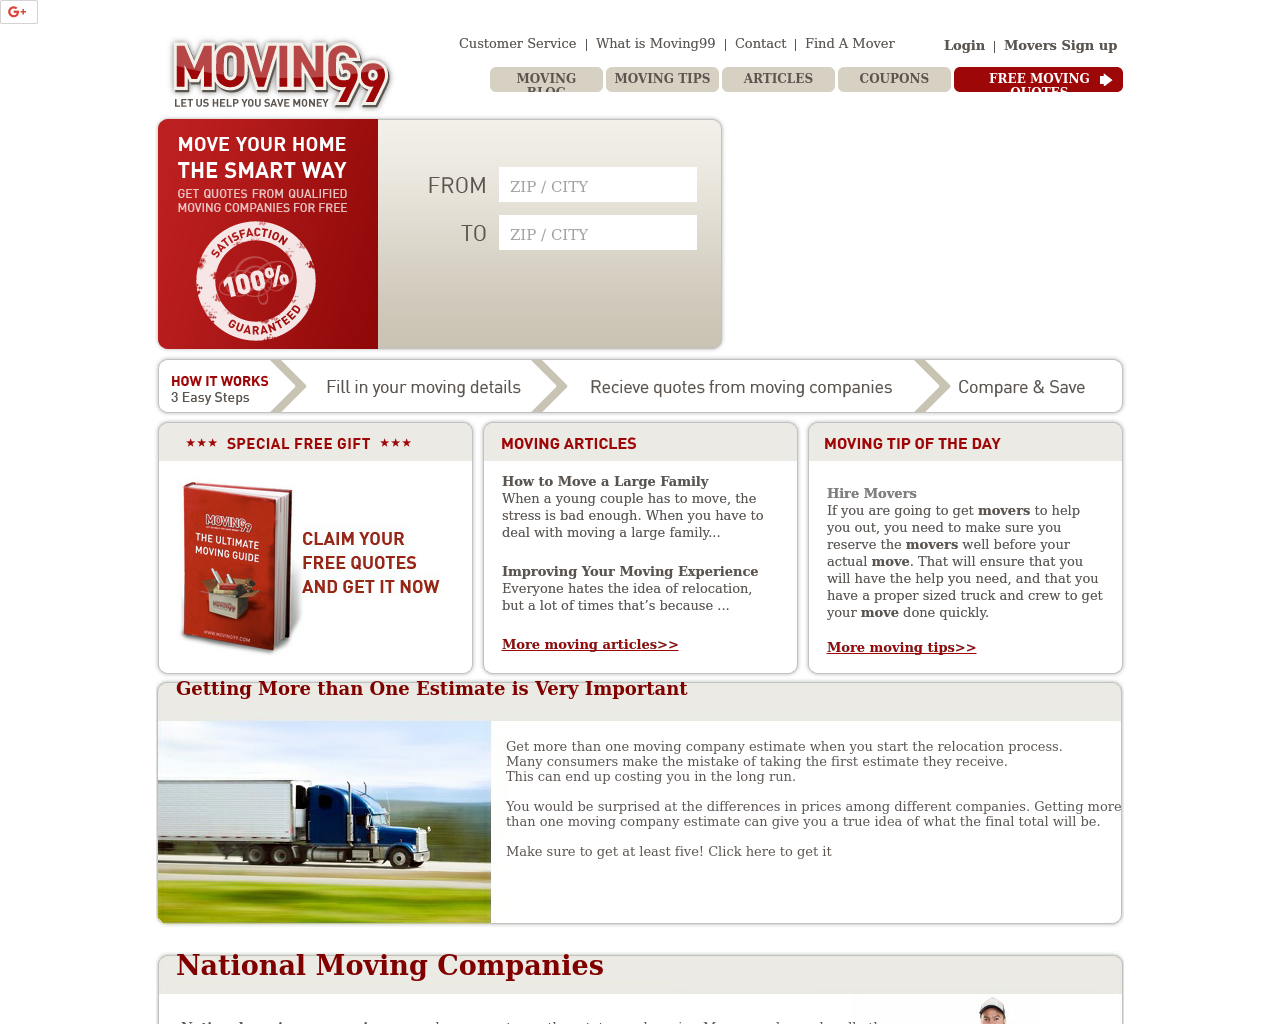 Moving-99-Advertising-Reviews-Pricing